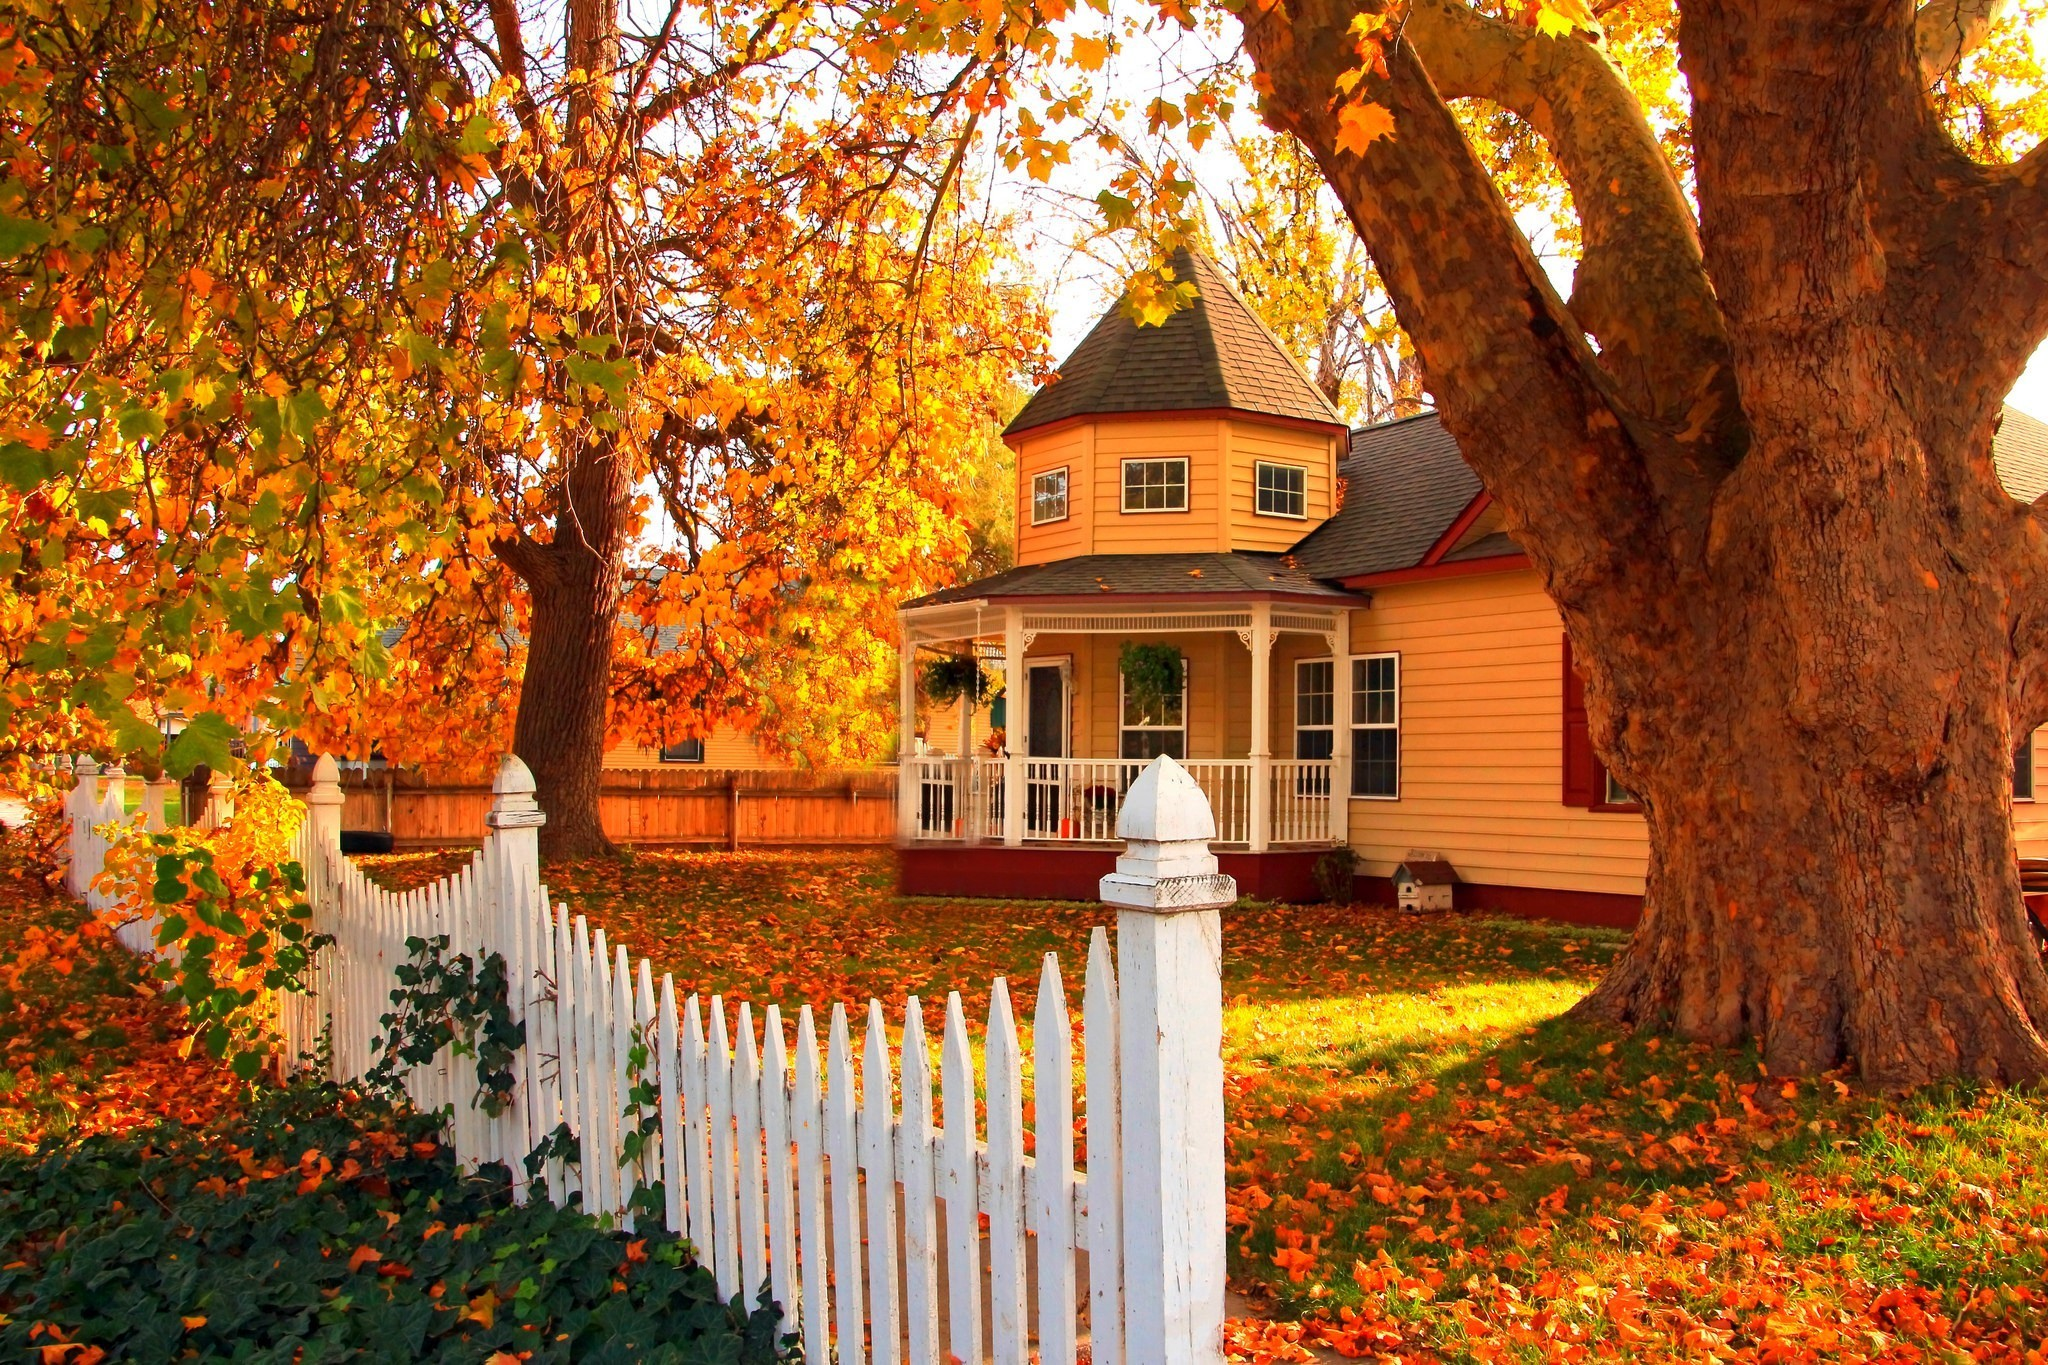 2048x1365 Man Made - House Man Made Orange Architecture Fence Fall Tree Leaf Wallpaper